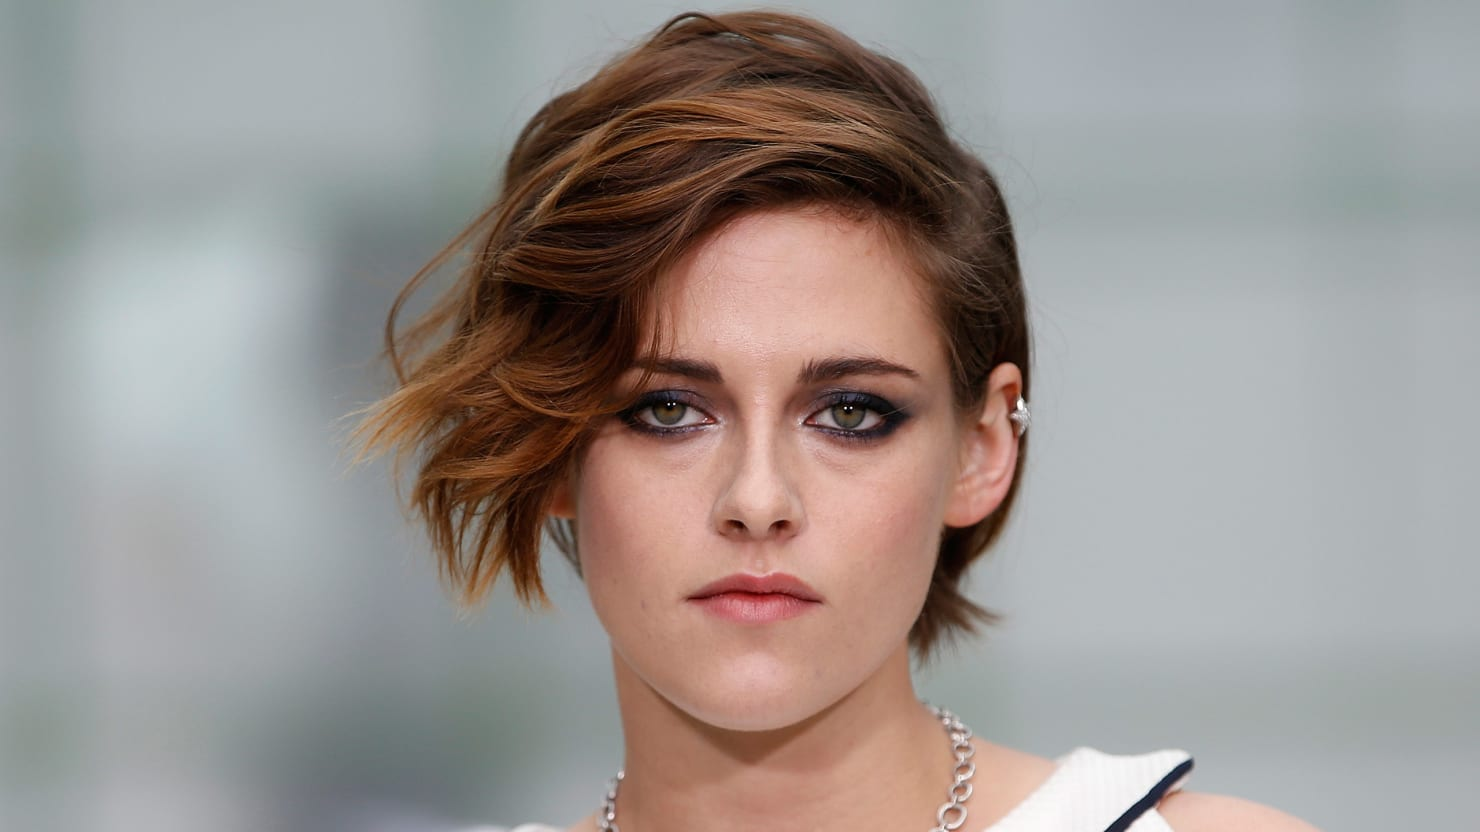 kristen stewart's sexual revolution: 'i'm not hiding'